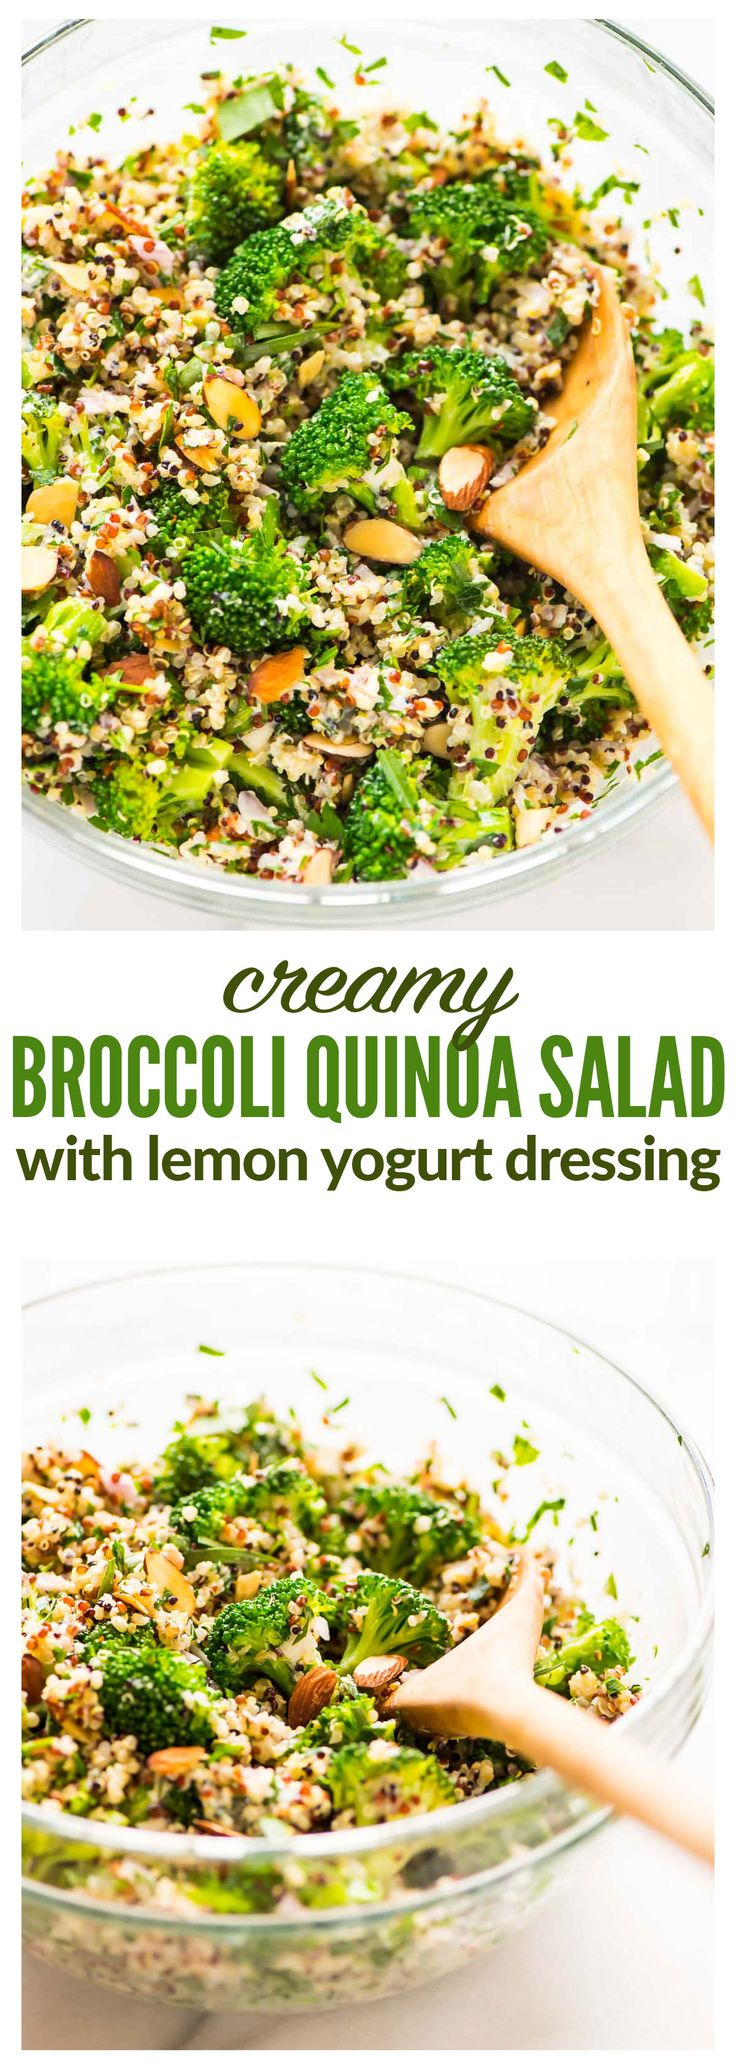 Creamy Broccoli Quinoa Salad with Greek Yogurt Lemon Dressing. Healthy and protein packed! Perfect for make ahead meals, light lunches, and potluck side dishes. {gluten free} Recipe at wellplated.com | @wellplated (Paleo Side Dishes)